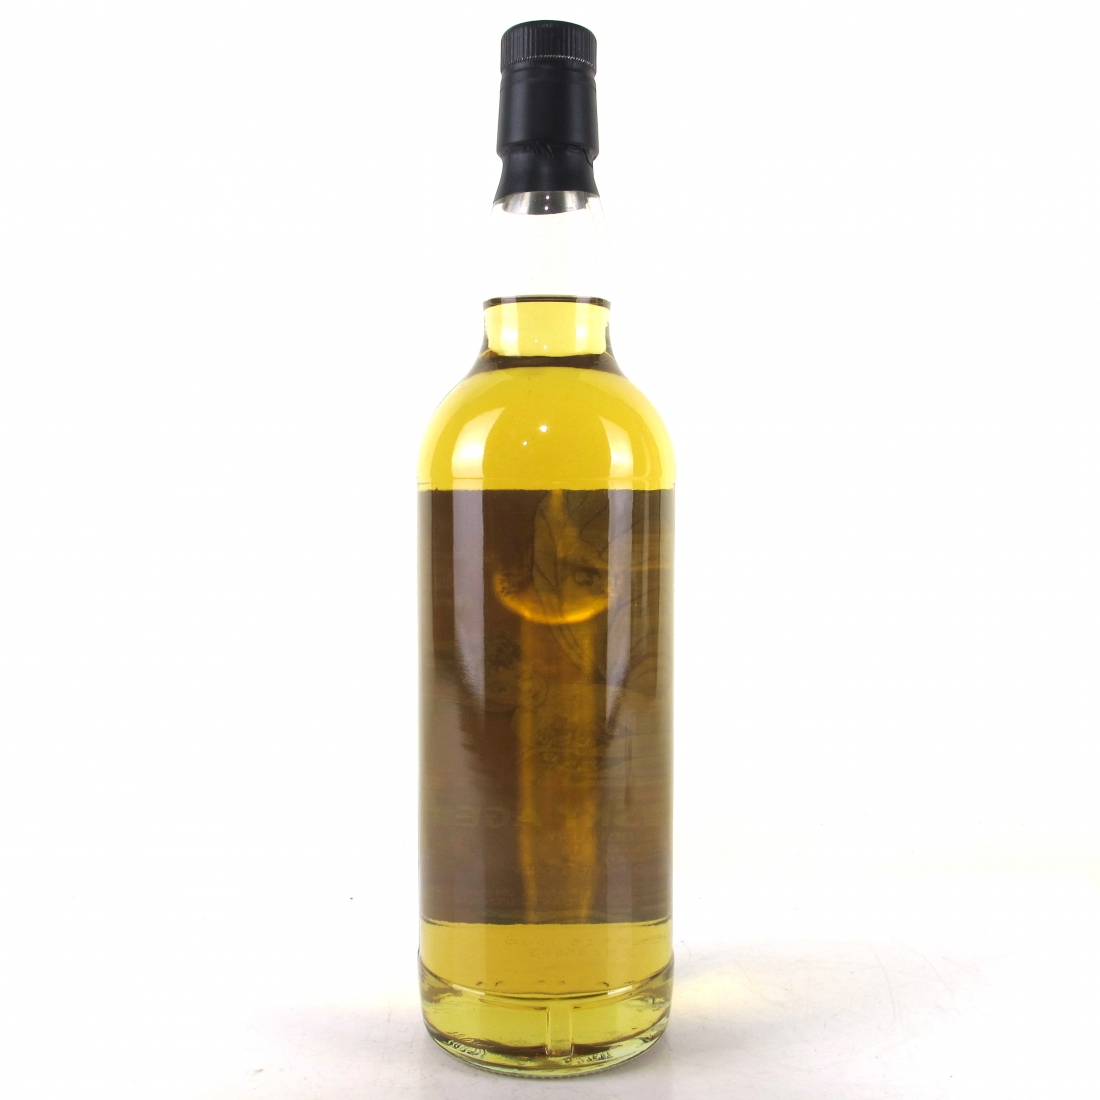 Cambus 1988 The Whisky Agency 28 Year Old